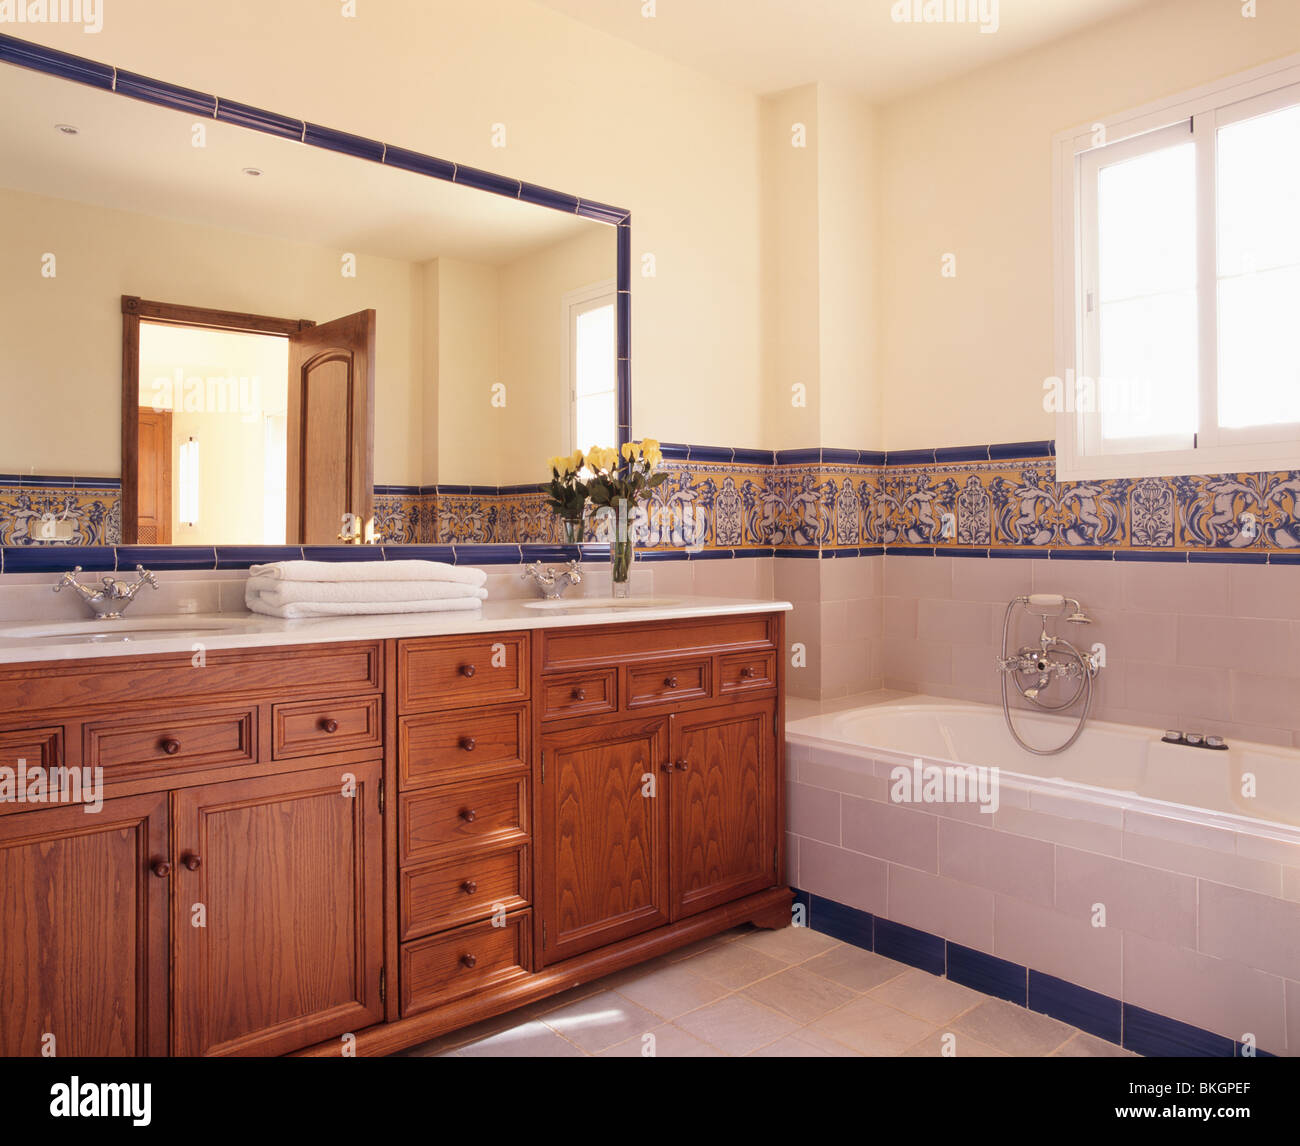 Large Mirror Above Fitted Wood Vanity Unit In Modern Spanish Bathroom Stock Photo Alamy